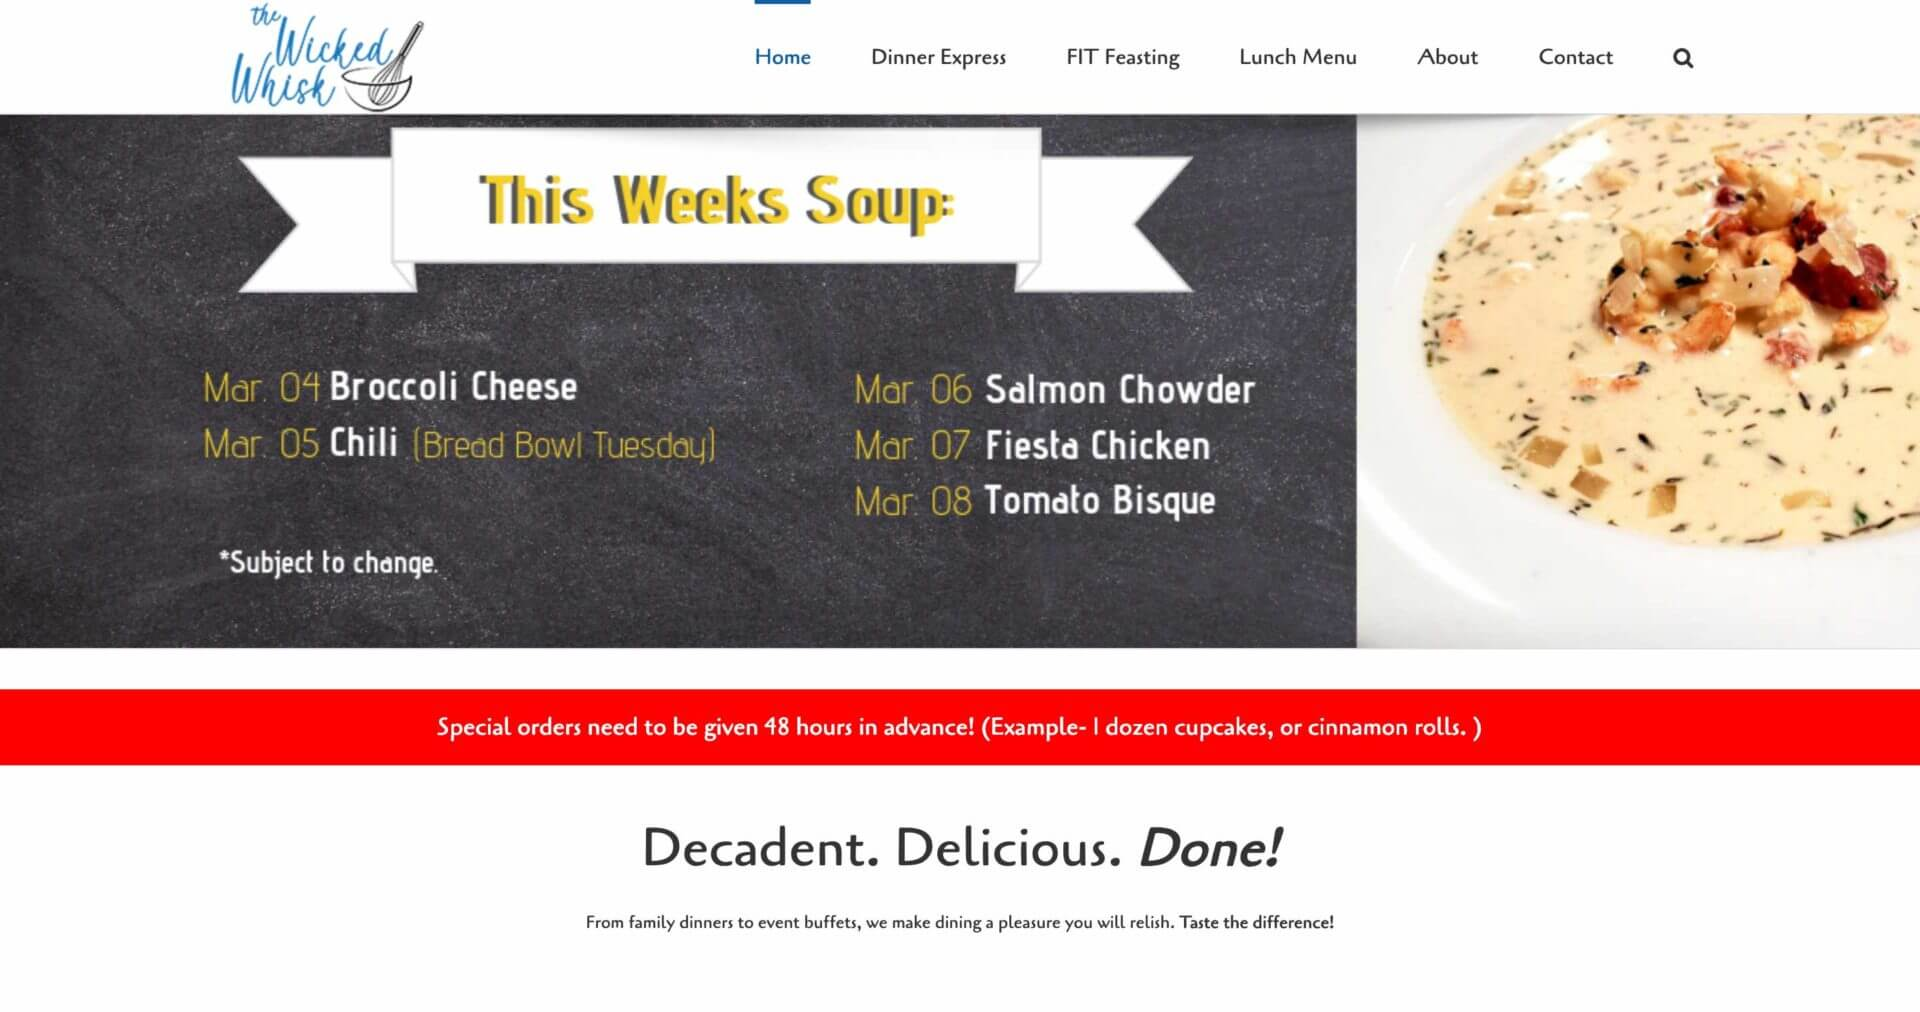 SO Services: The Wicked Whisk Homepage